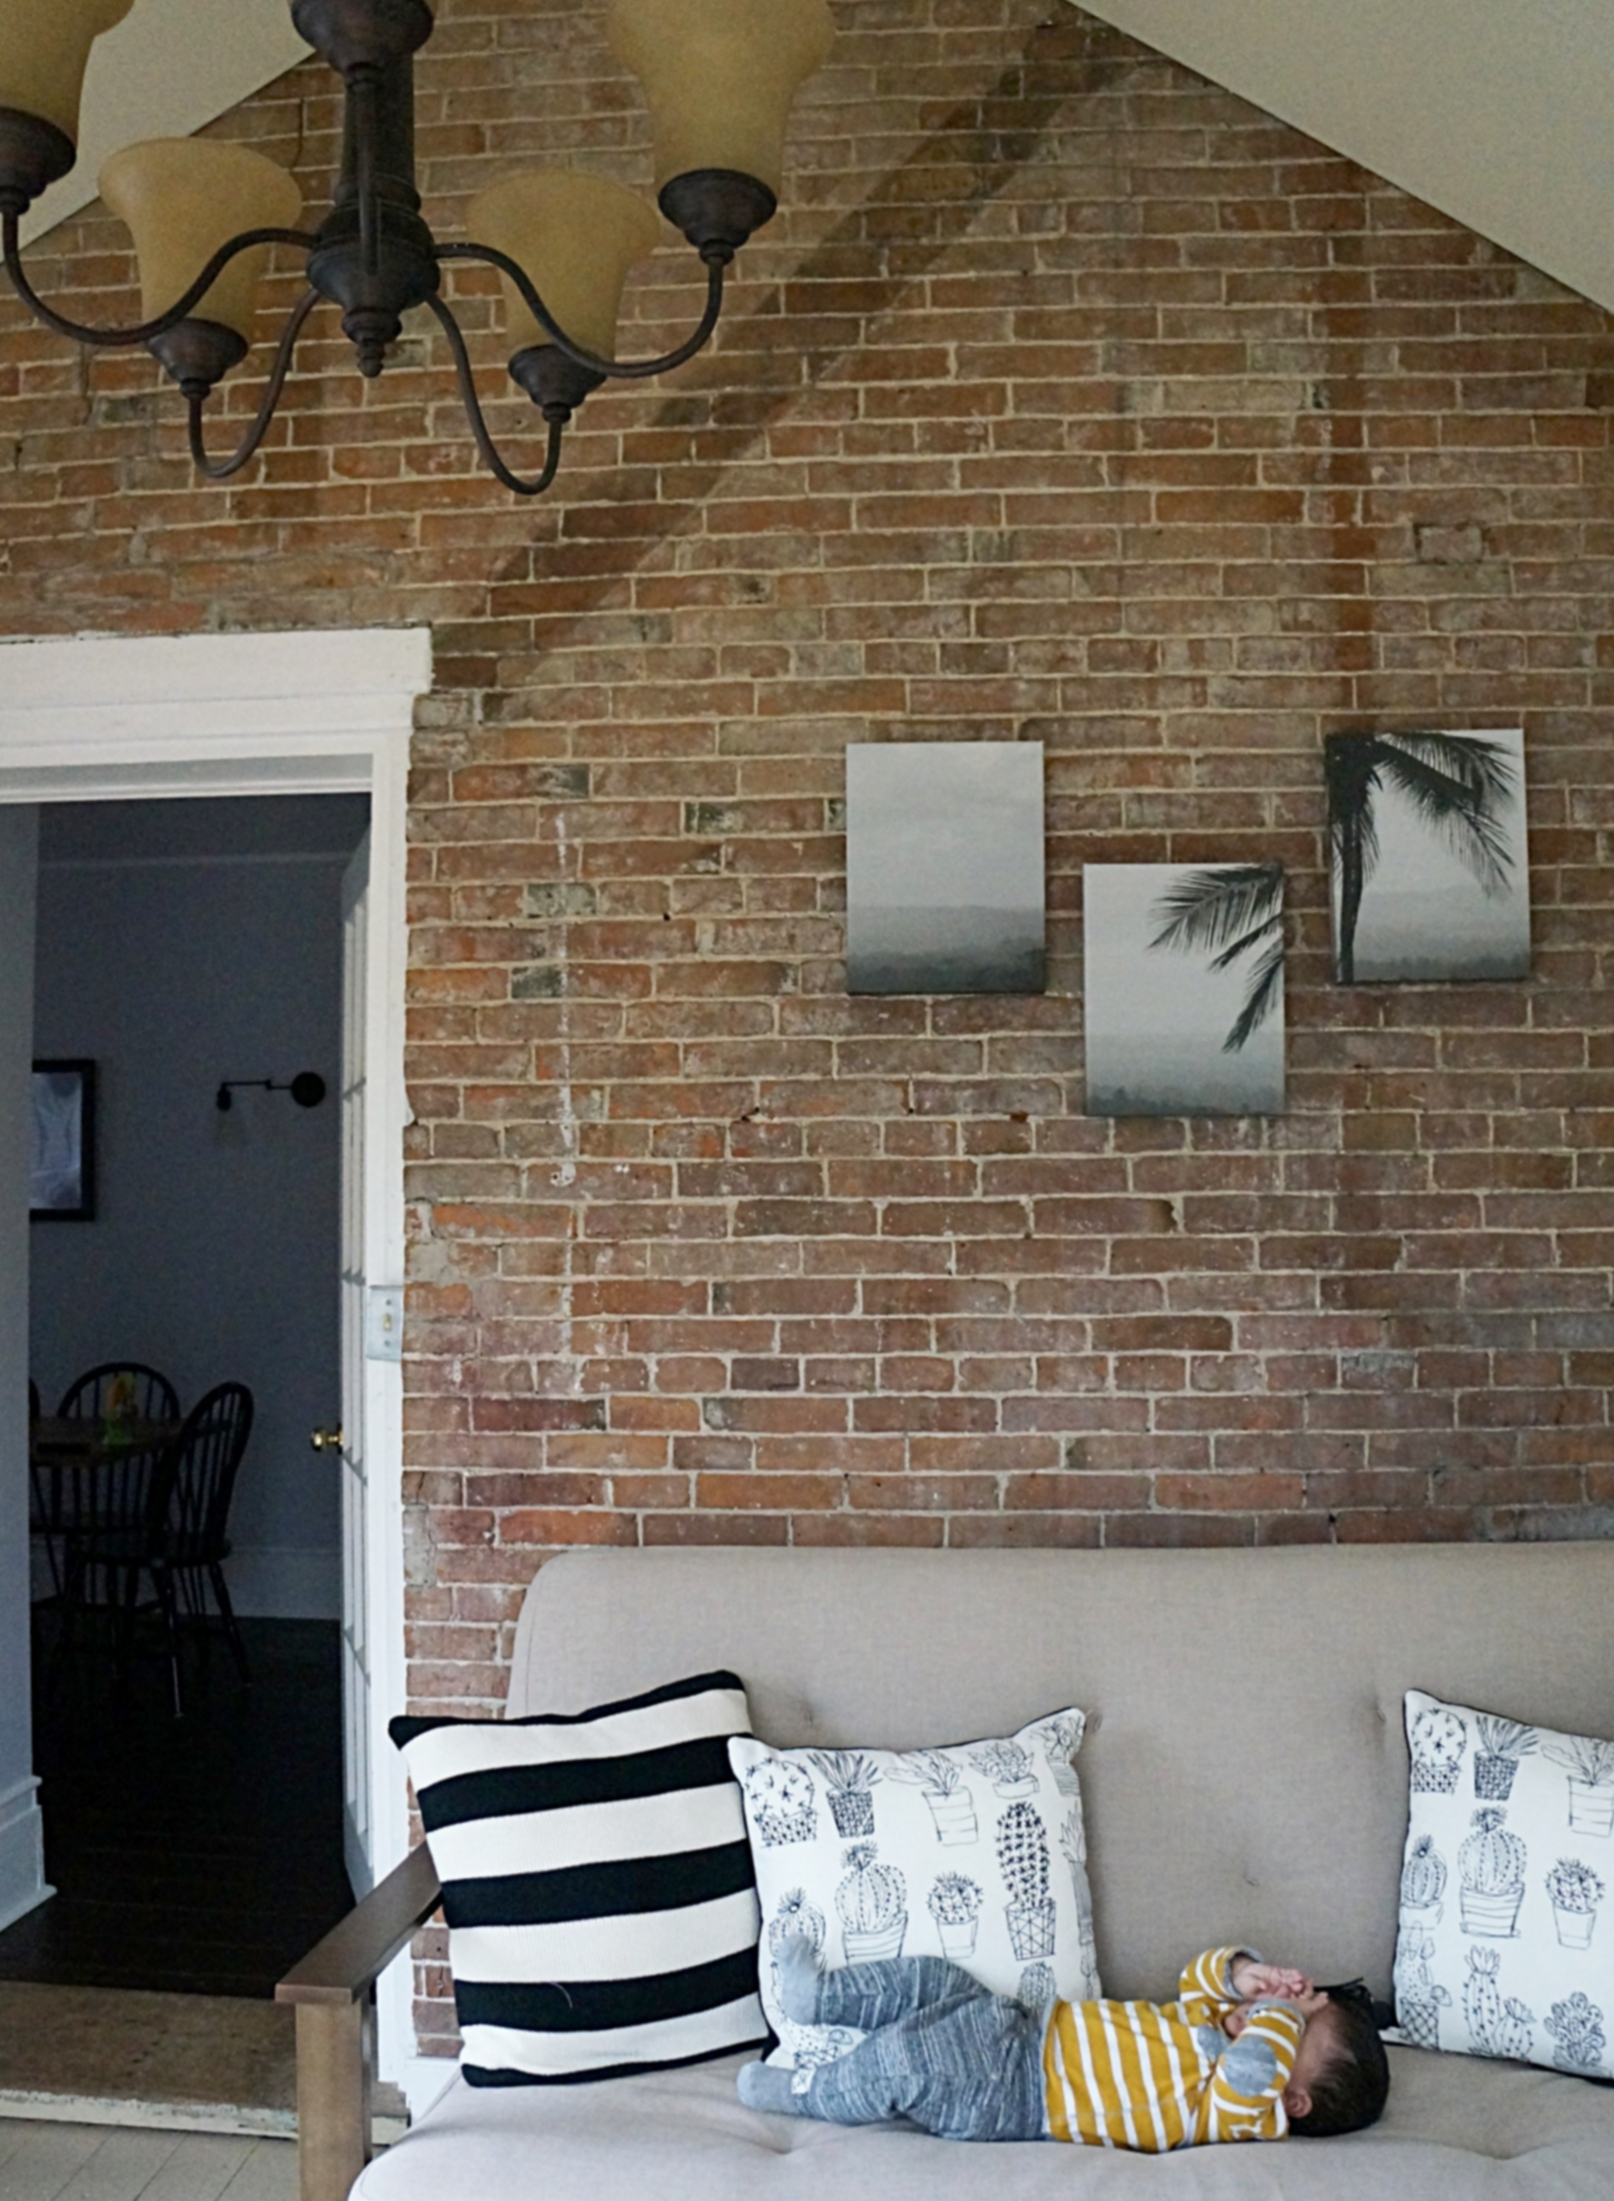 Prince Edward County, ON Canada - 1800's cottage, restored & renovated.